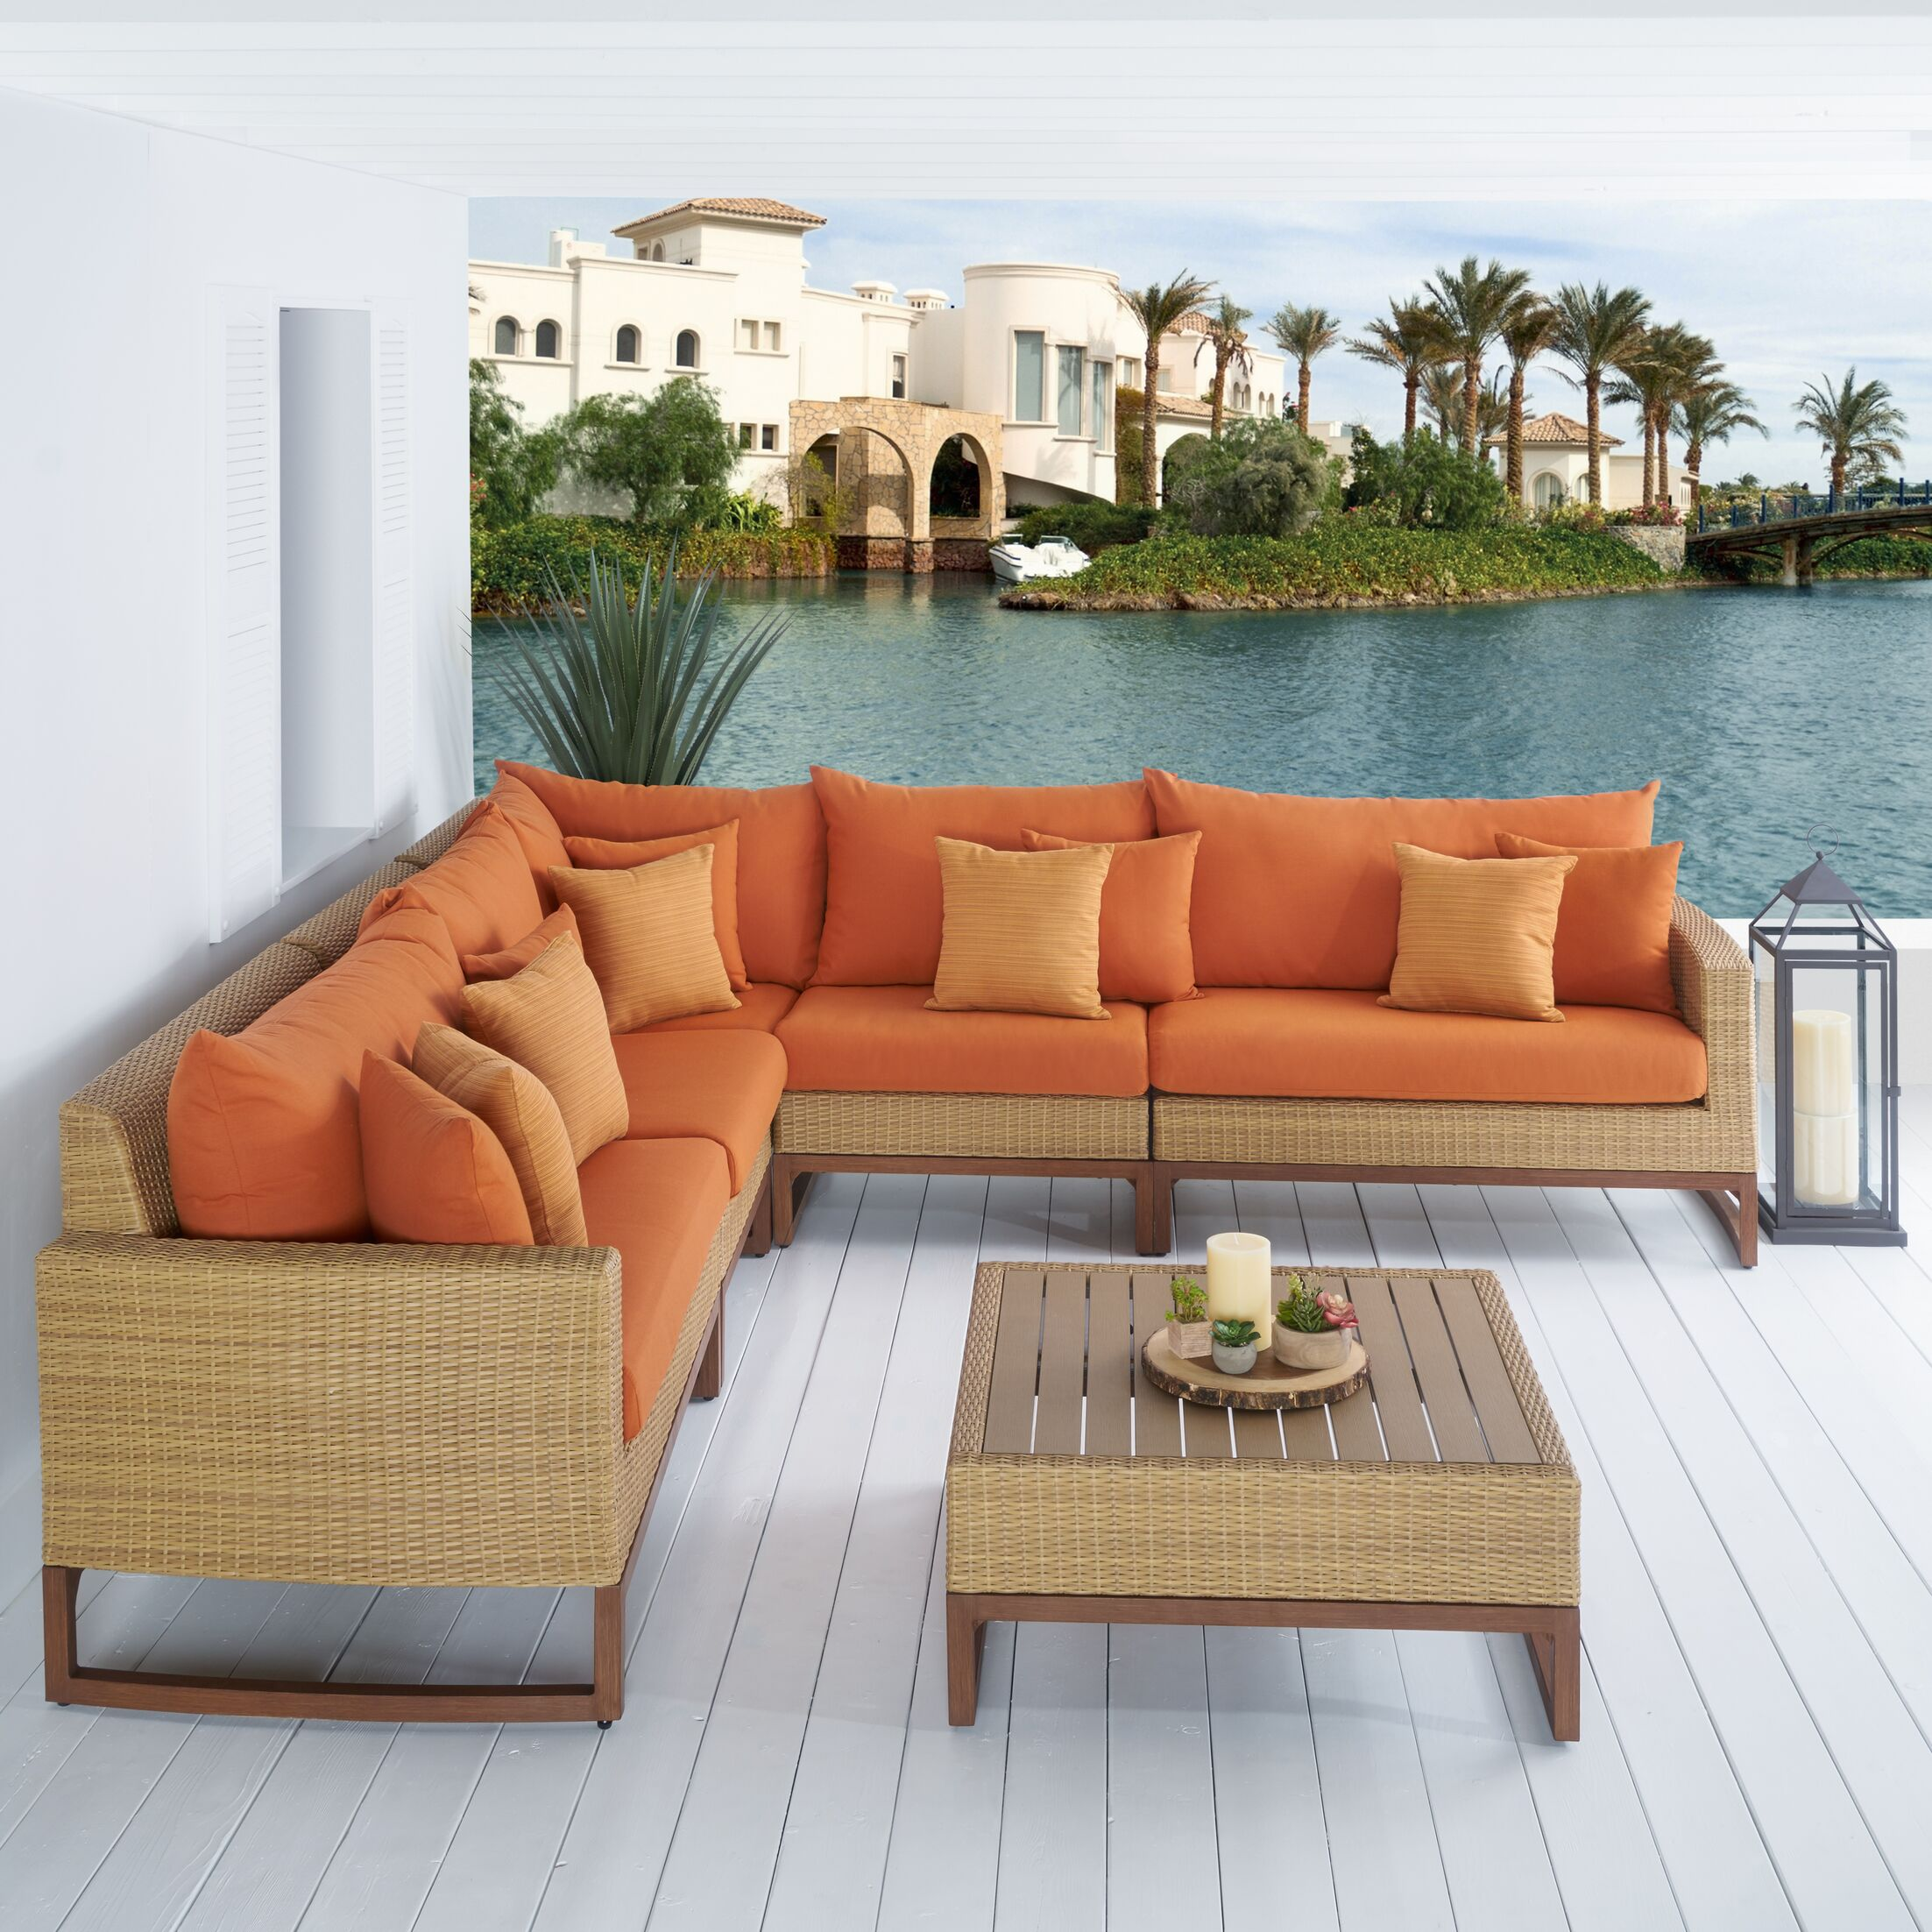 Addison 6 Piece Sunbrella Sectional Set with Cushions Fabric: Tikka Orange